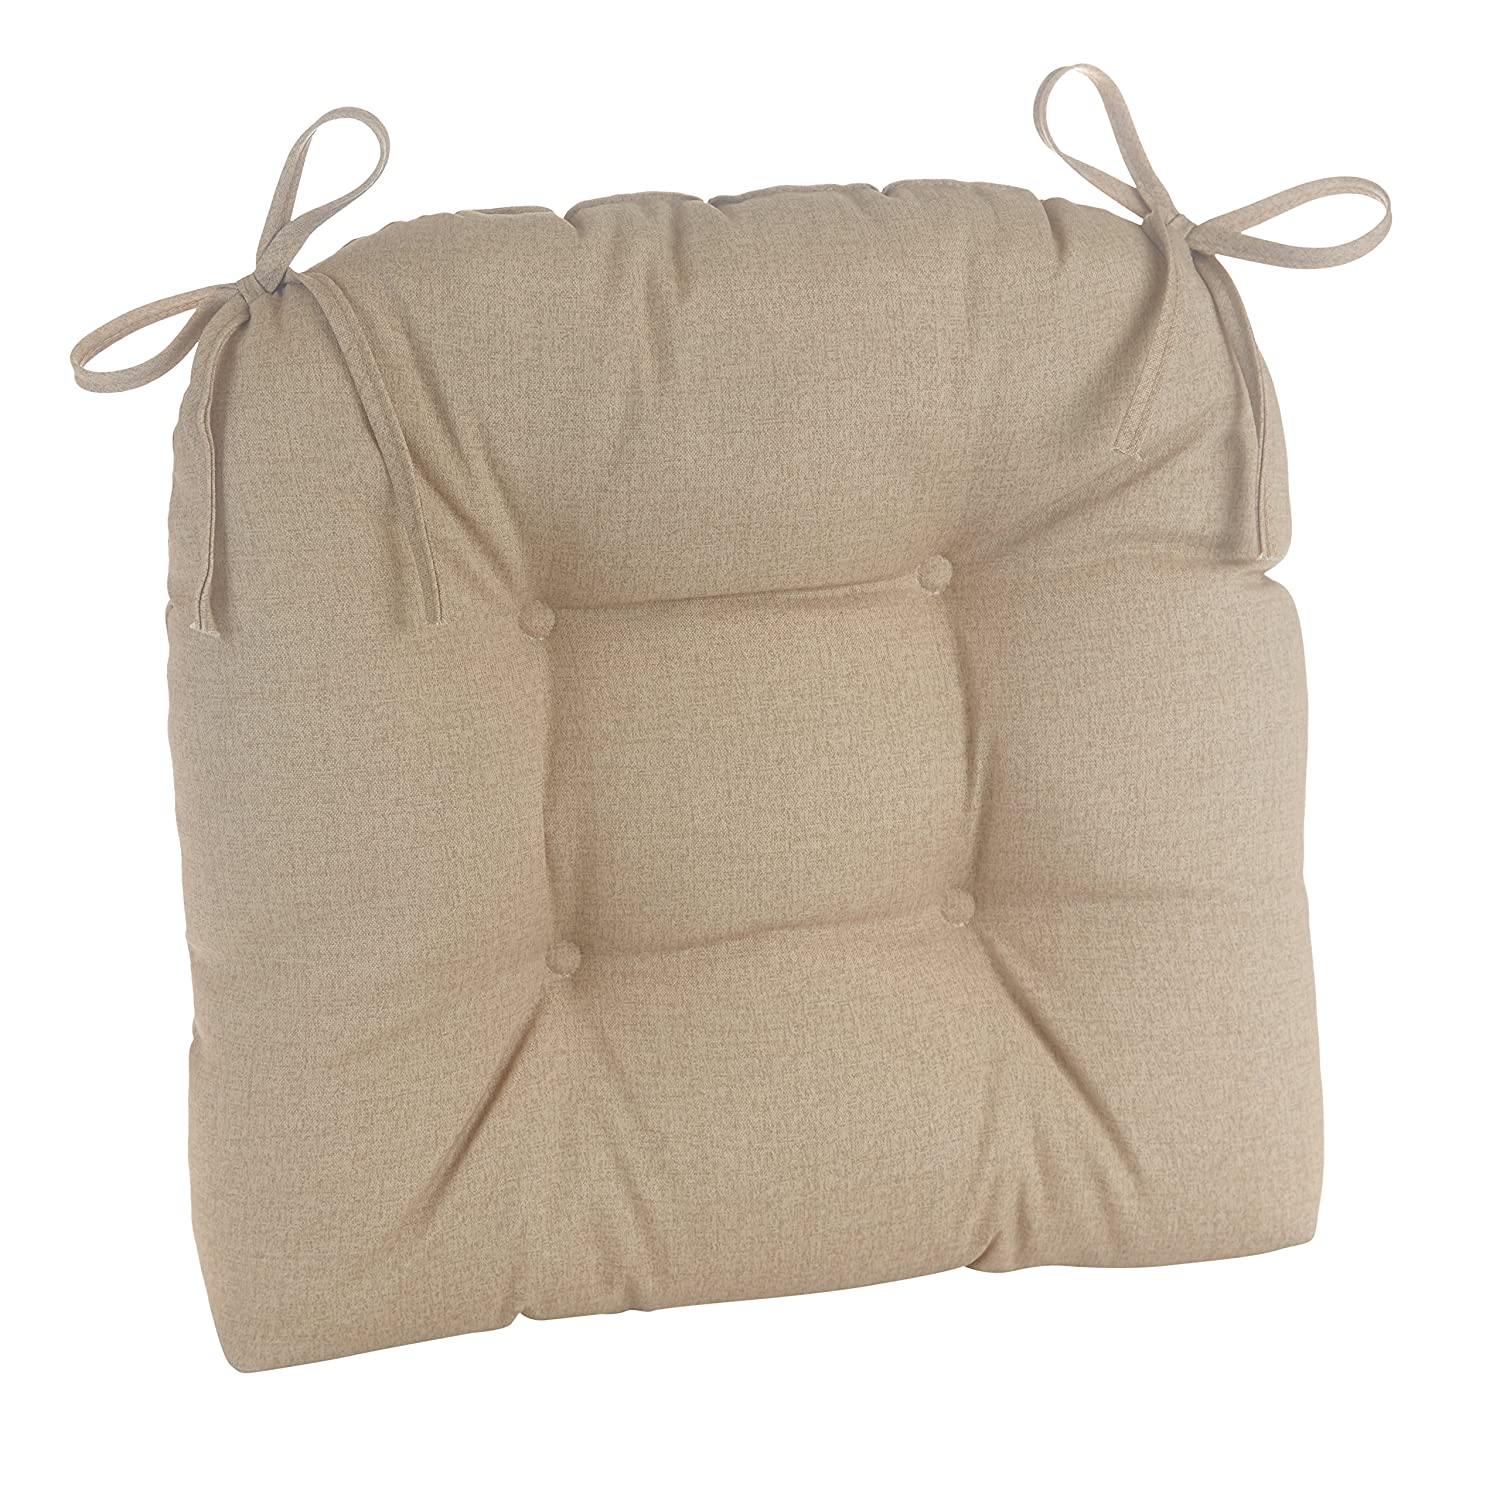 Klear Vu Indoor and Outdoor Large Dining Accent Chair Pad Cushion with Ties, 19 x 18 , Husk Birch